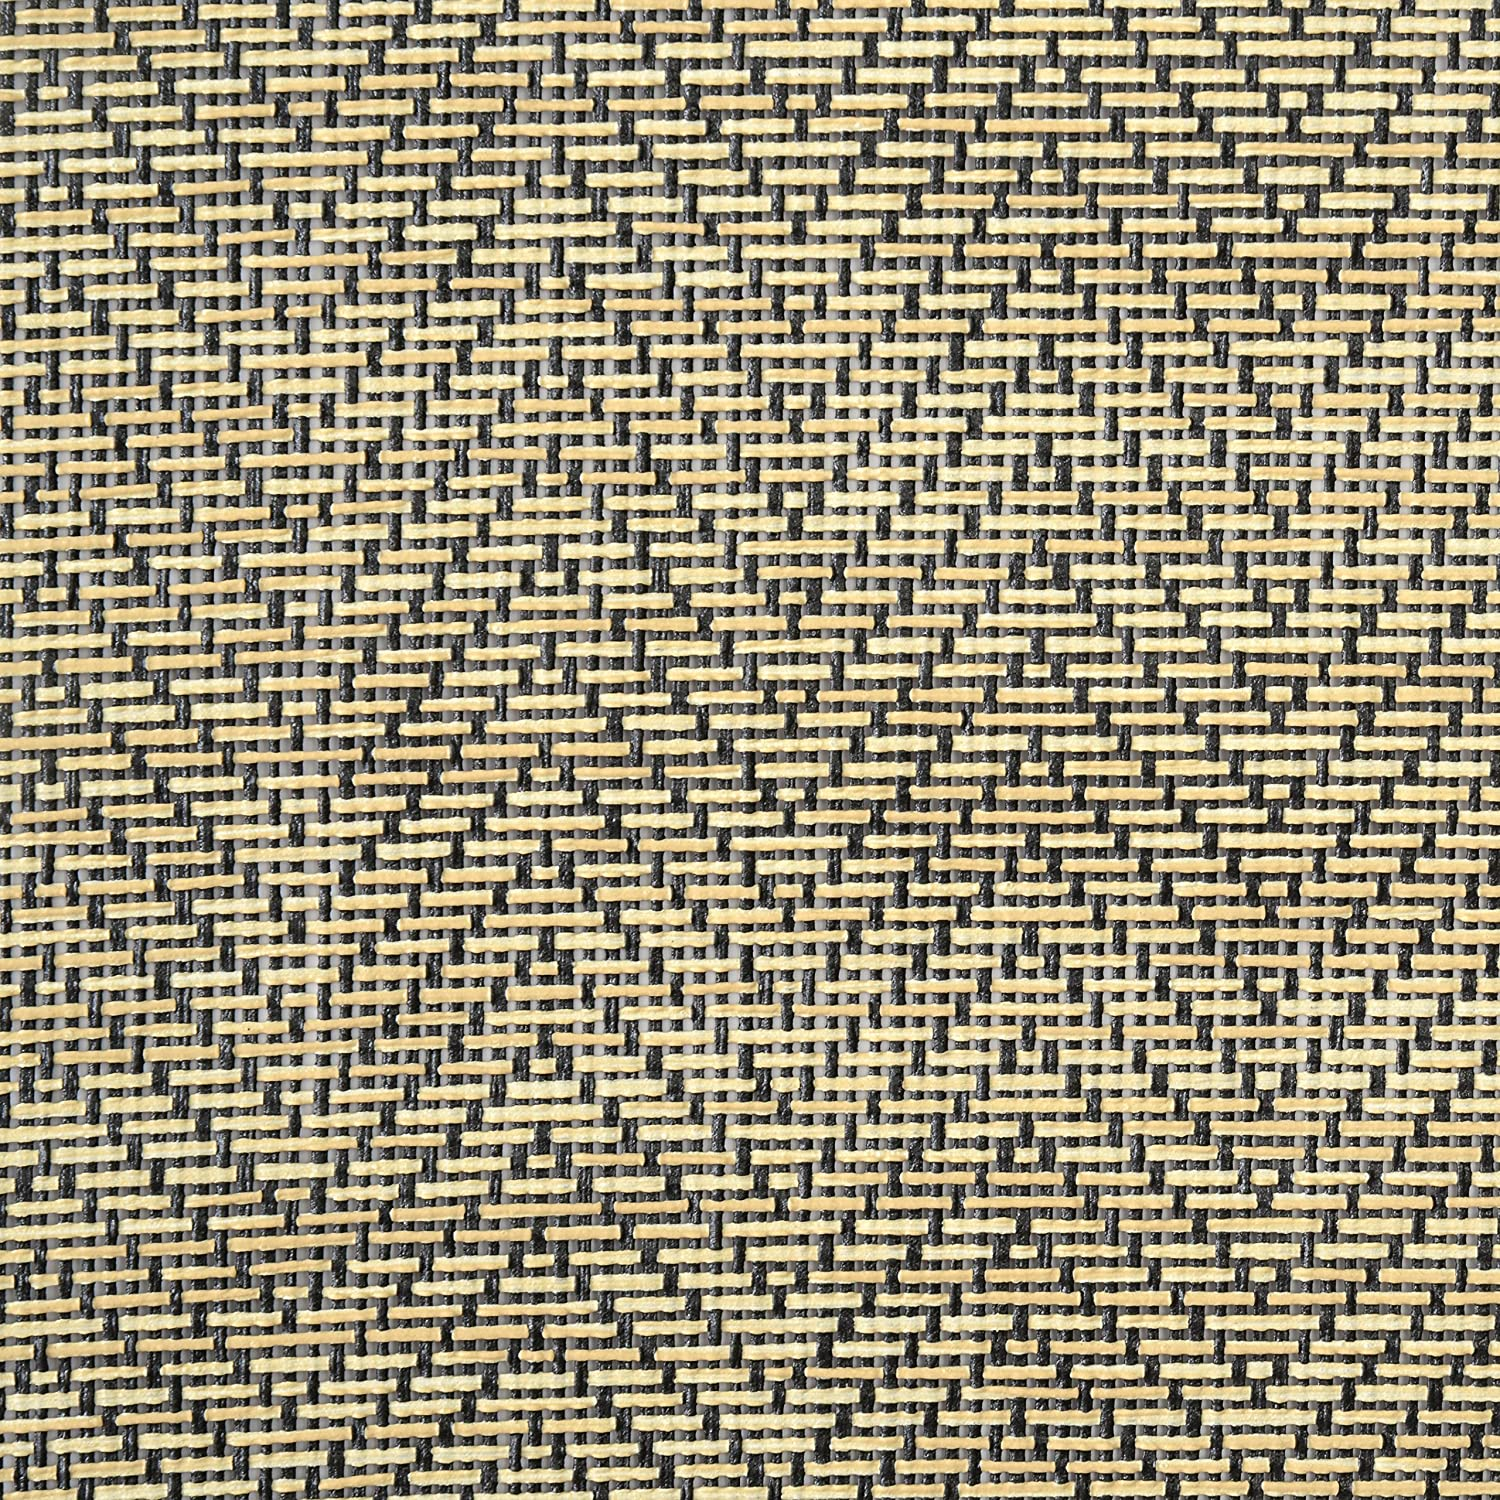 Con-Tact Brand Brand Natural Weave Non-Adhesive Contact Shelf and Drawer Liner 12 x 4,6 Rolls Zig Zag Black//Ivory Kittrich Corporation 04F-CWV58-06EC